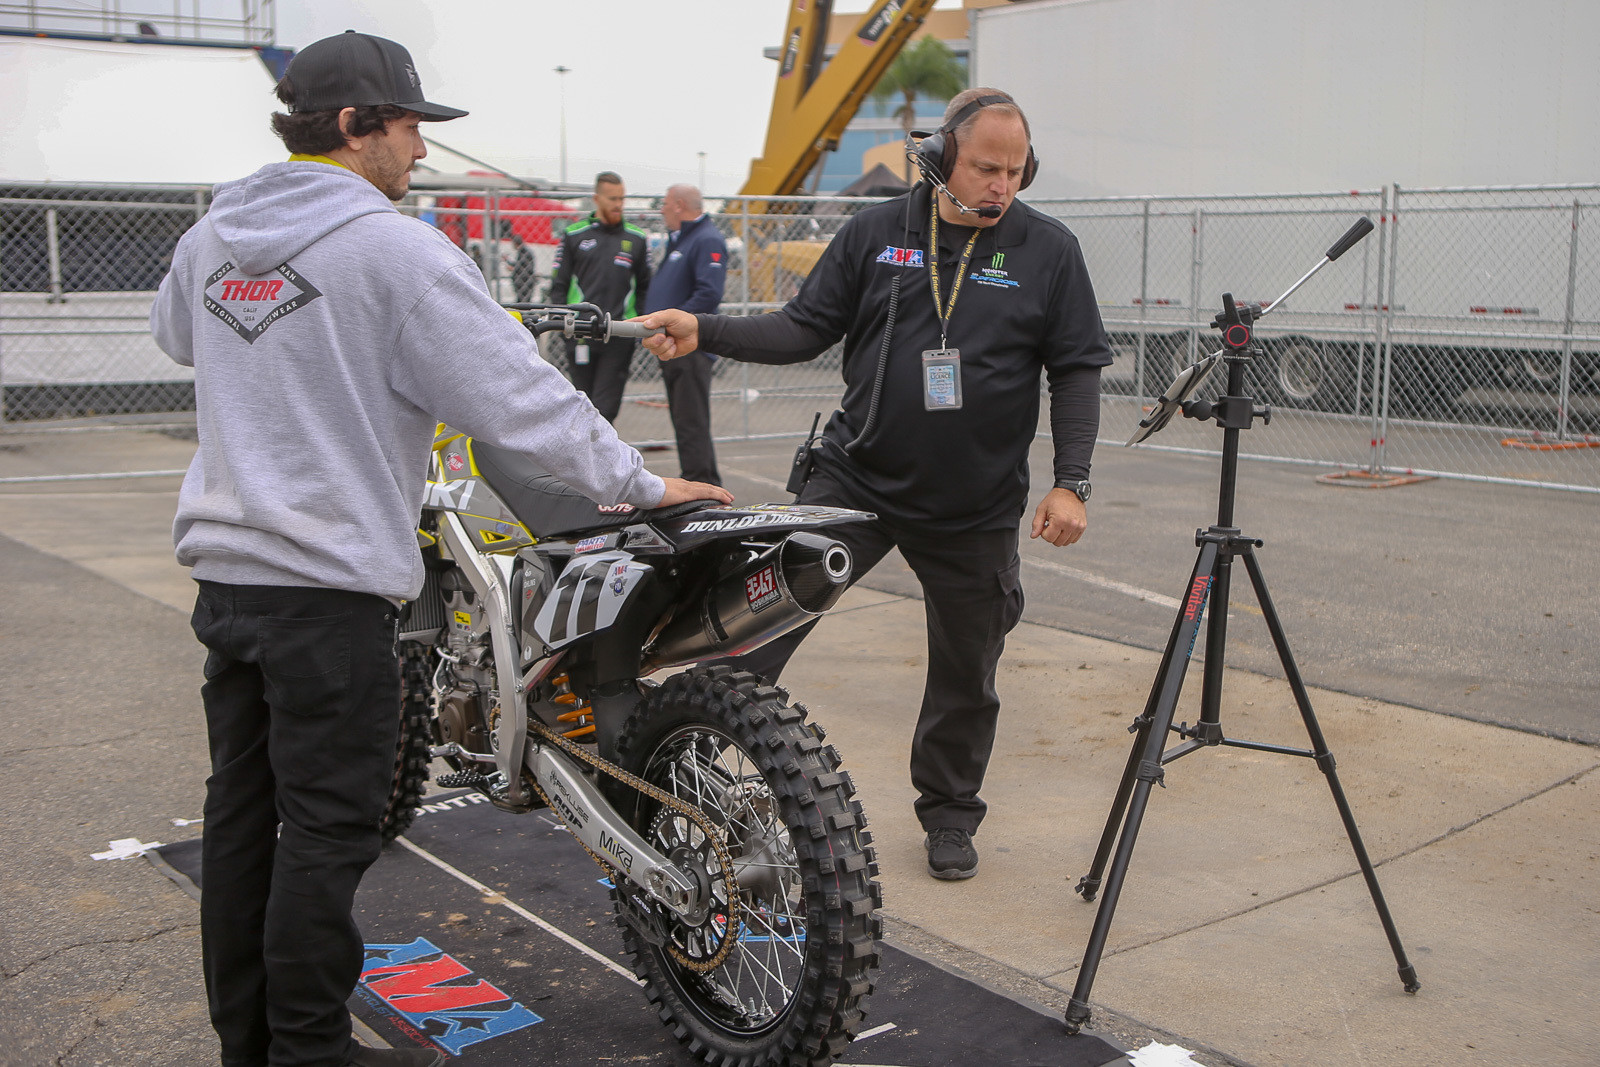 What's old? Some people struggle to make it through sound testing. We hear the H.E.P. Suzuki guys bought some Yoshimura pipes after Friday to ensure they could make it in.